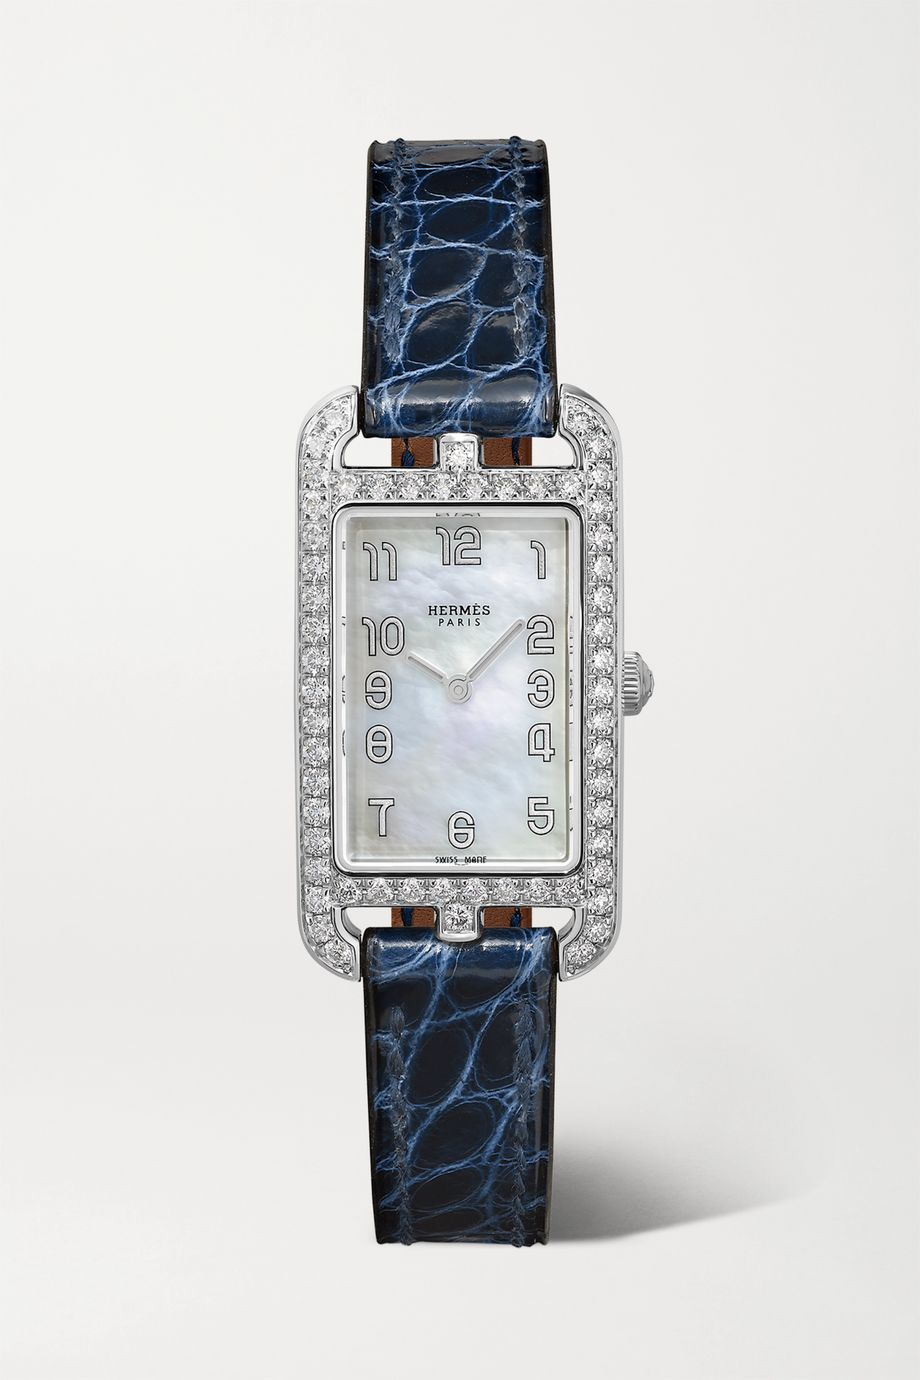 Hermès Timepieces Nantucket 20mm small stainless steel, alligator, mother-of-pearl and diamond watch